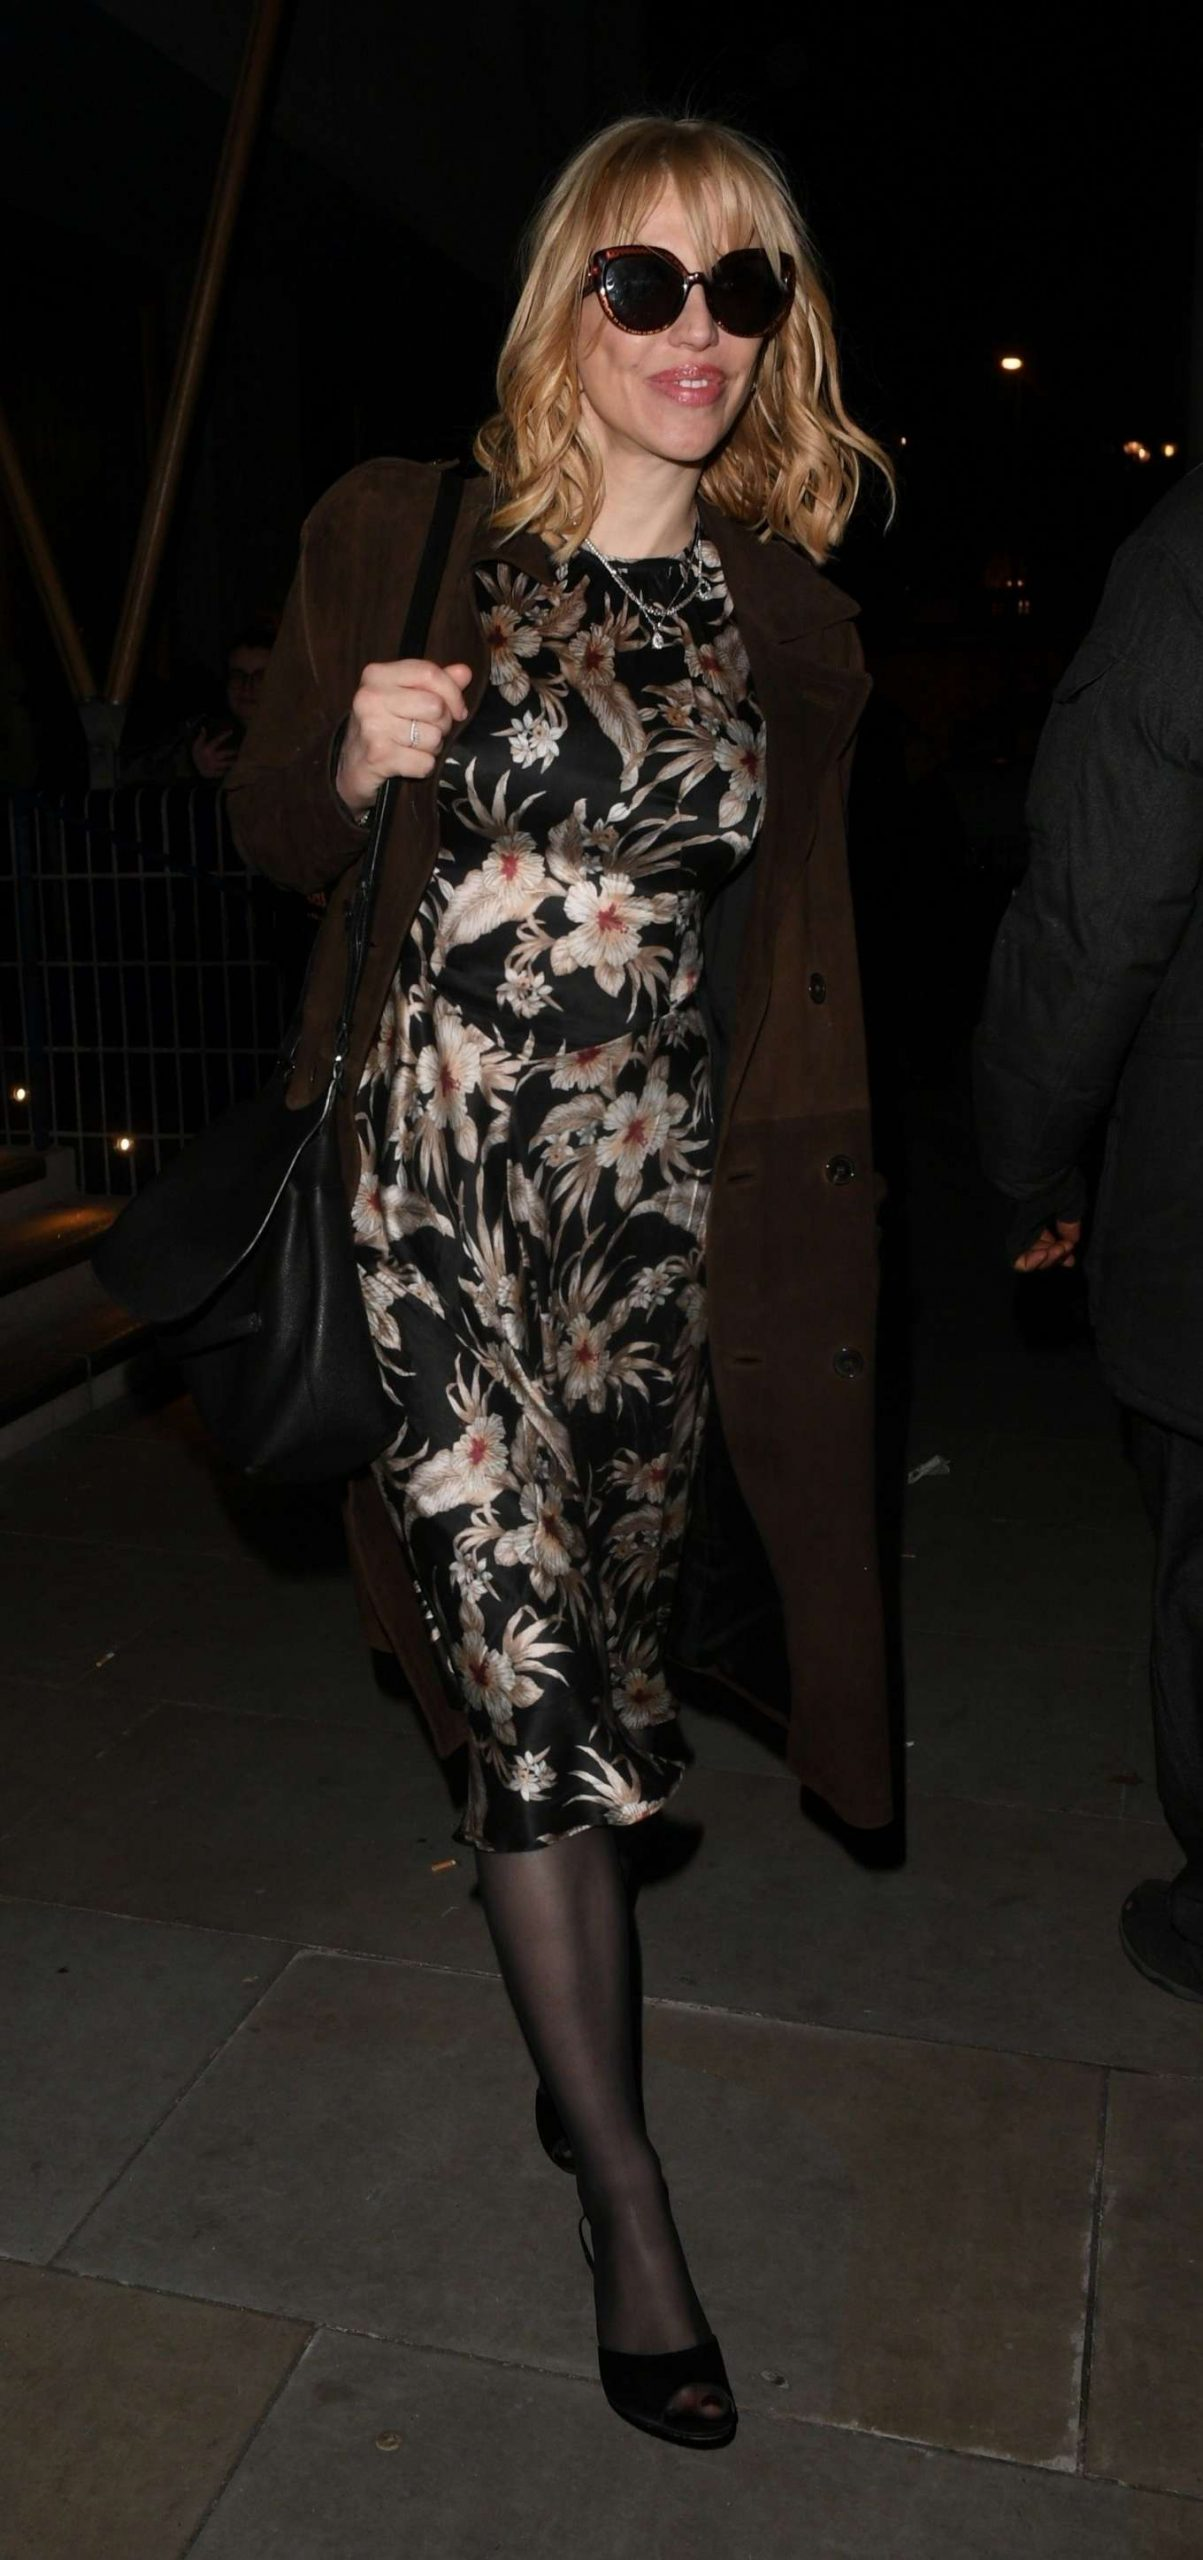 Courtney Love 2020 : Courtney Love attend the Love Magazine party in London-01